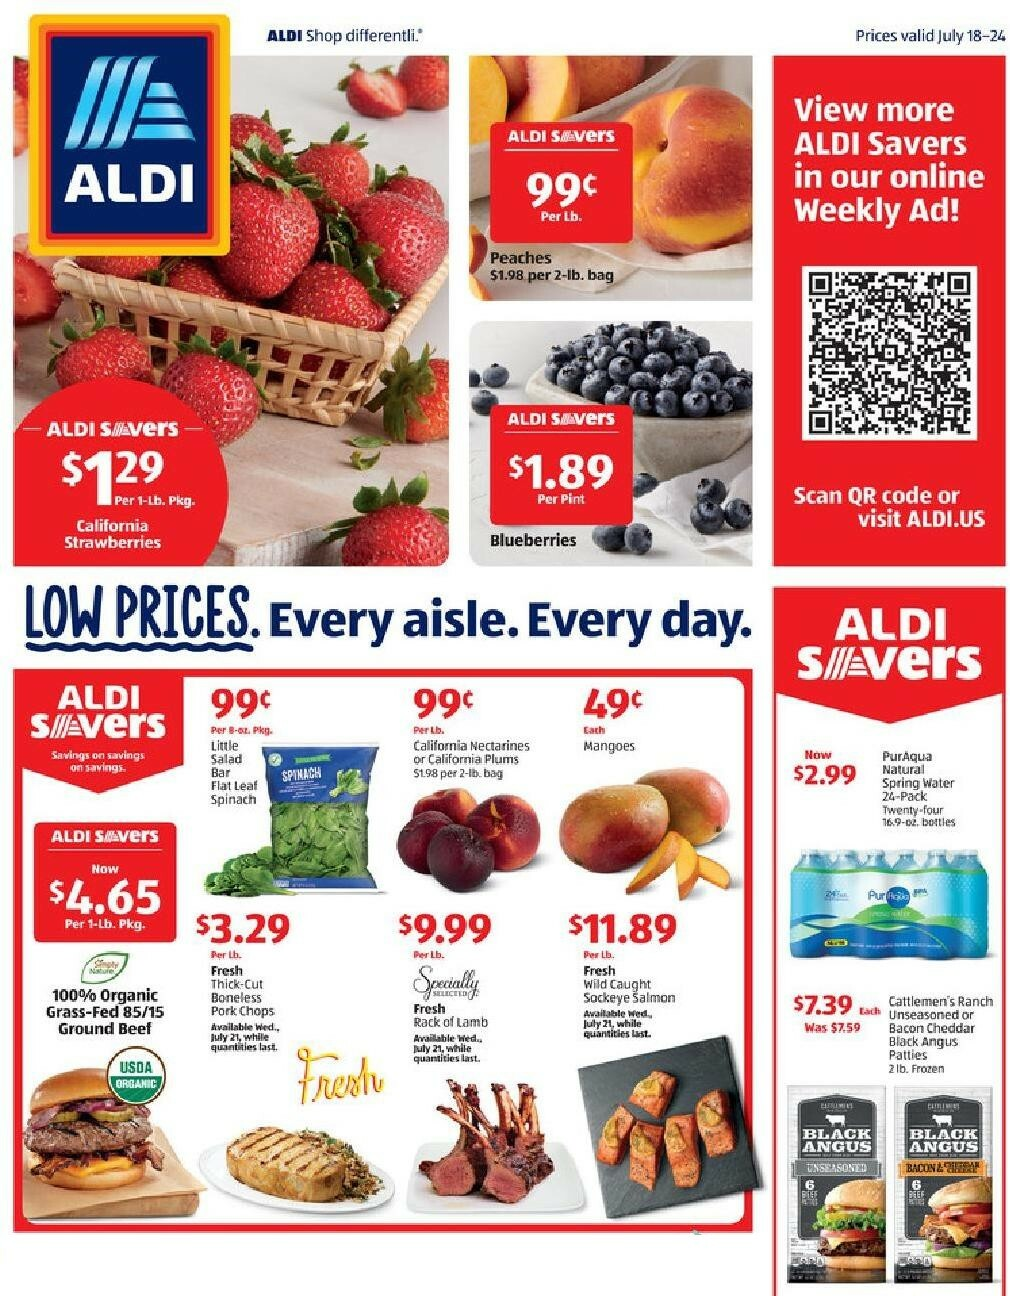 ALDI Weekly Ad from July 18